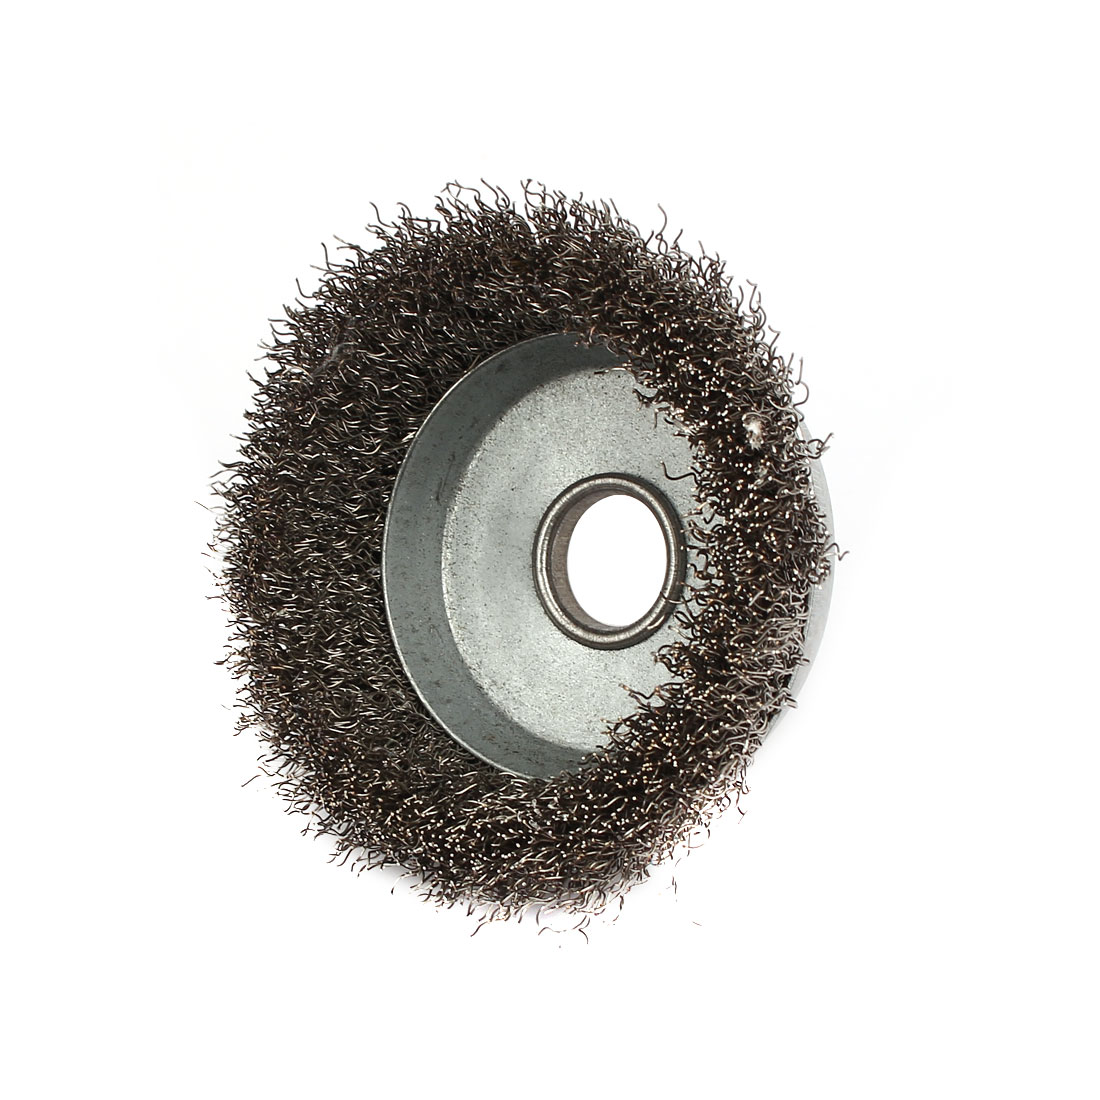 85mm Dia Bowl-Shaped Stainless Steel Wire Polishing Brush Wheel Buffing Tool